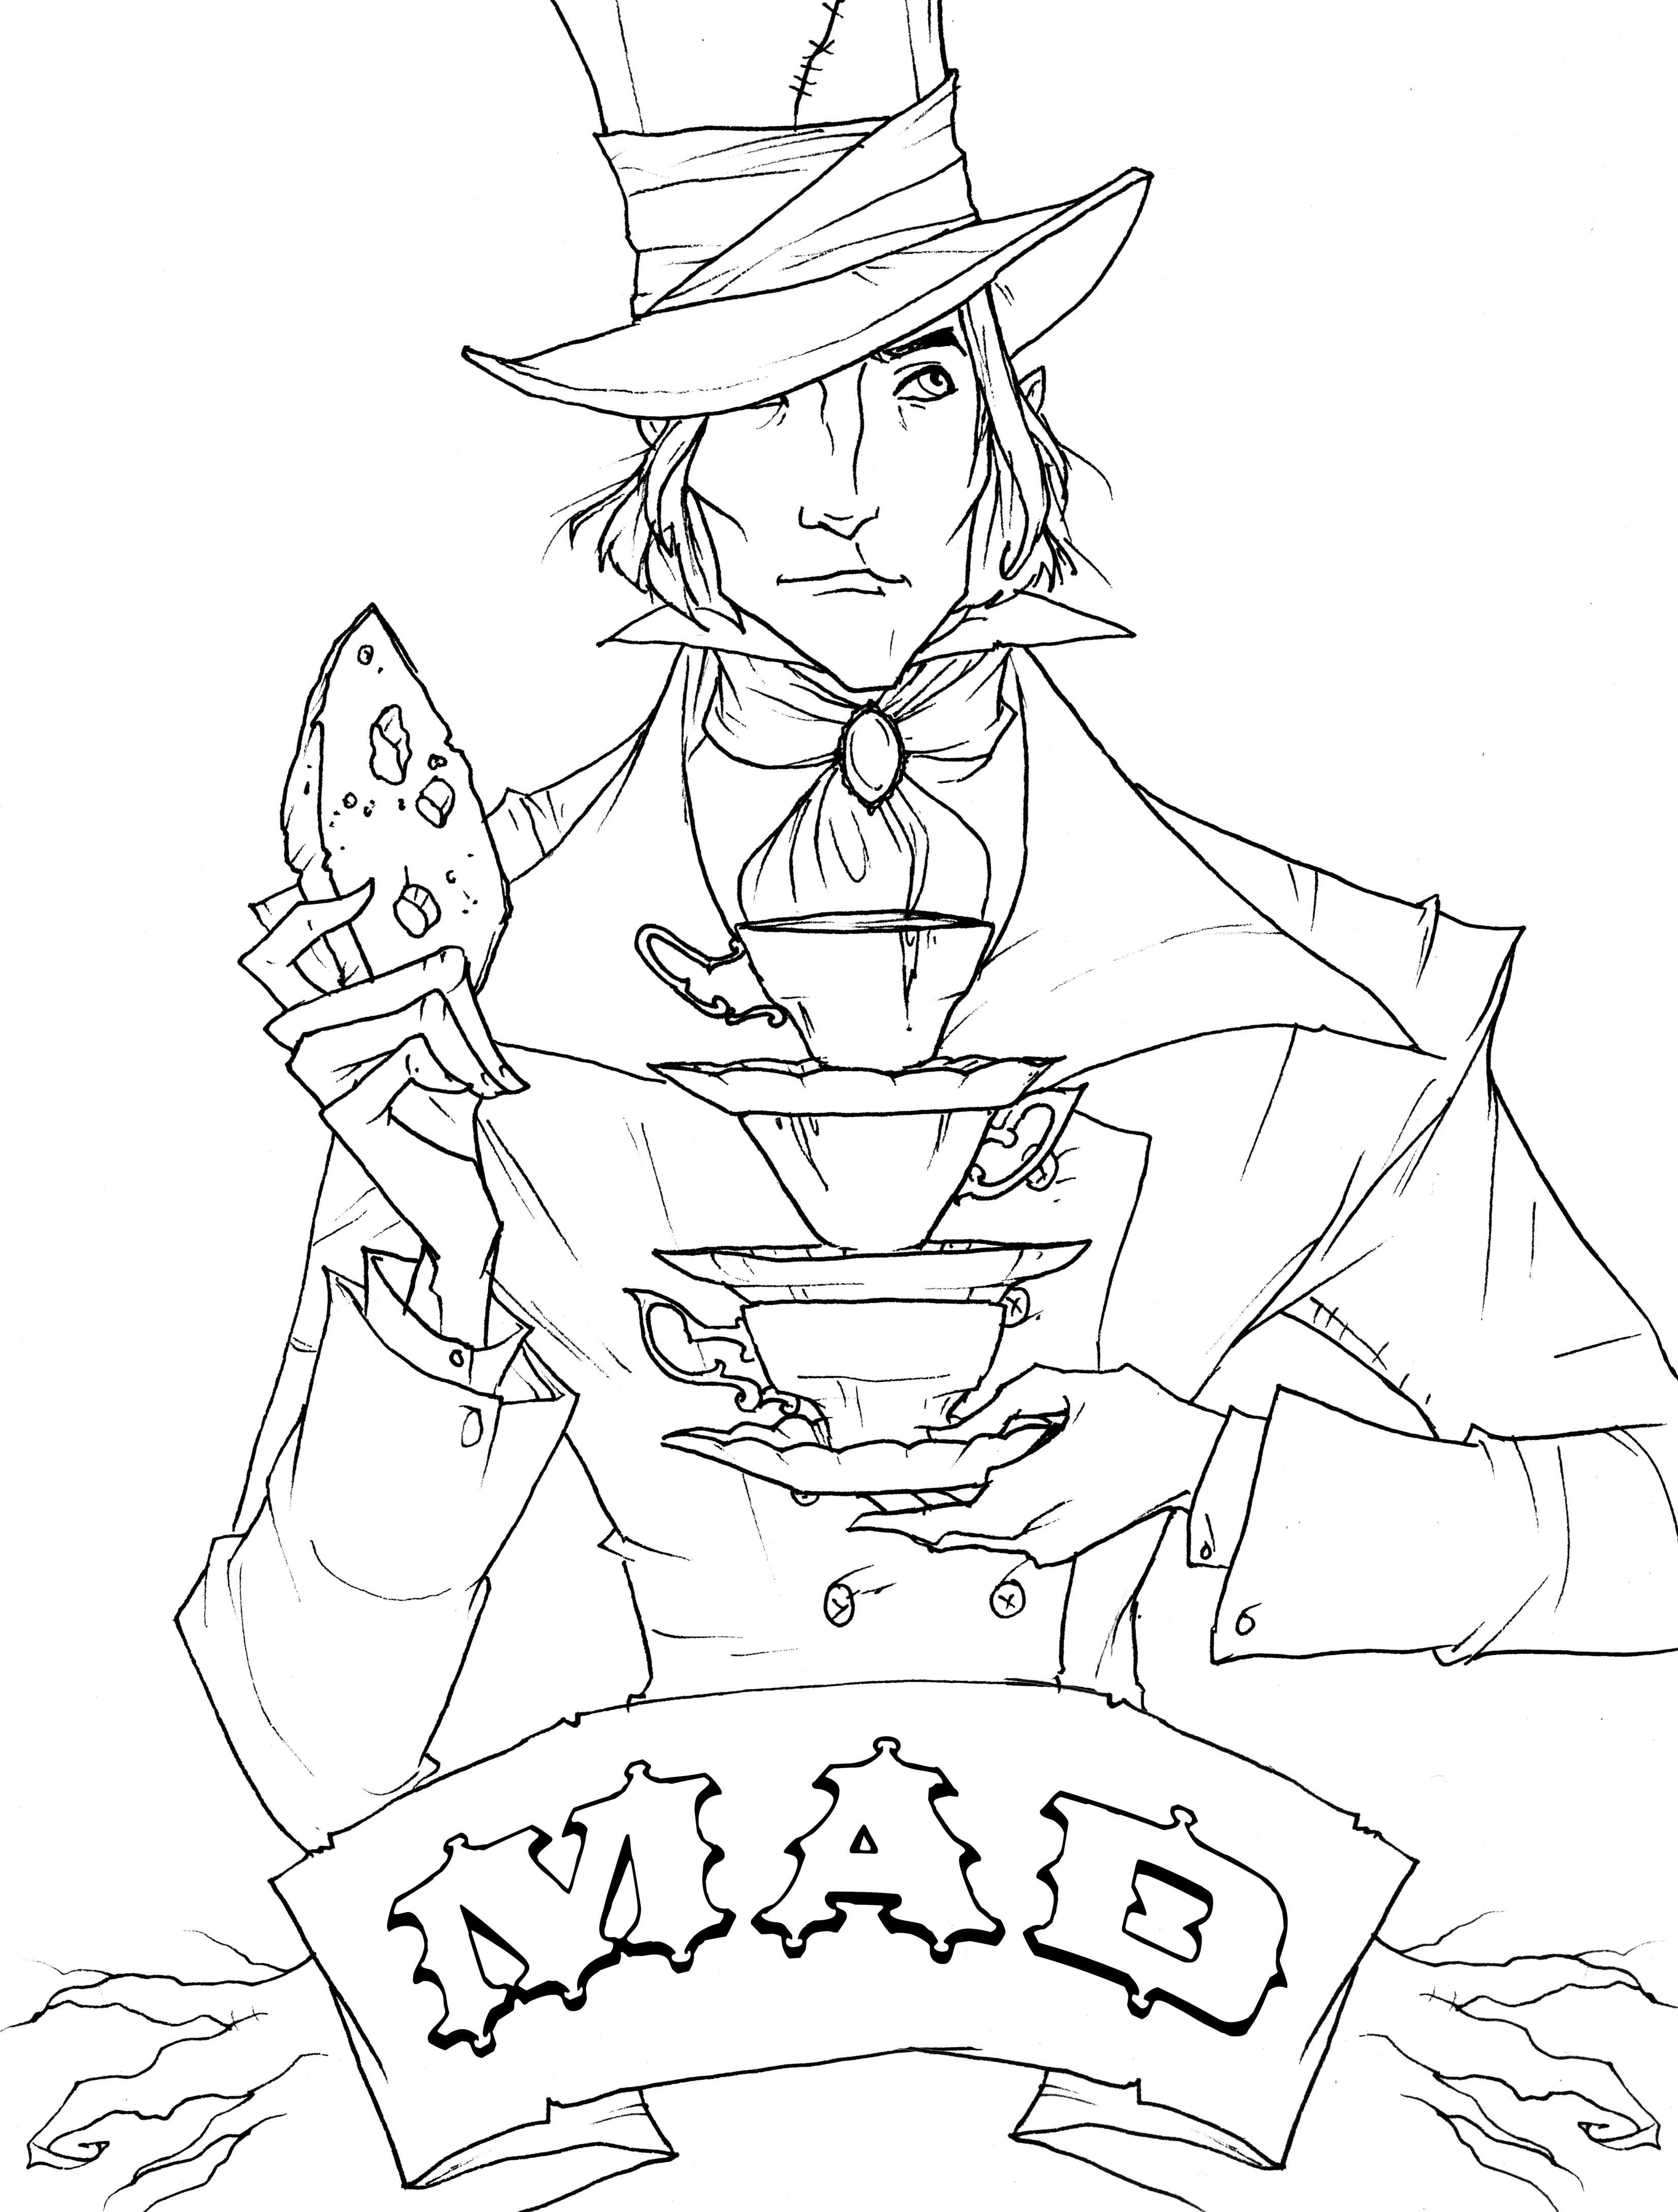 Enjoy This Free Mad Hatter Coloring Page From Impact S Alice S Wonderfilled Adventures By Abigail Larson Coloringbook Alice Mad Hatter Day Mad Hatter Hatter